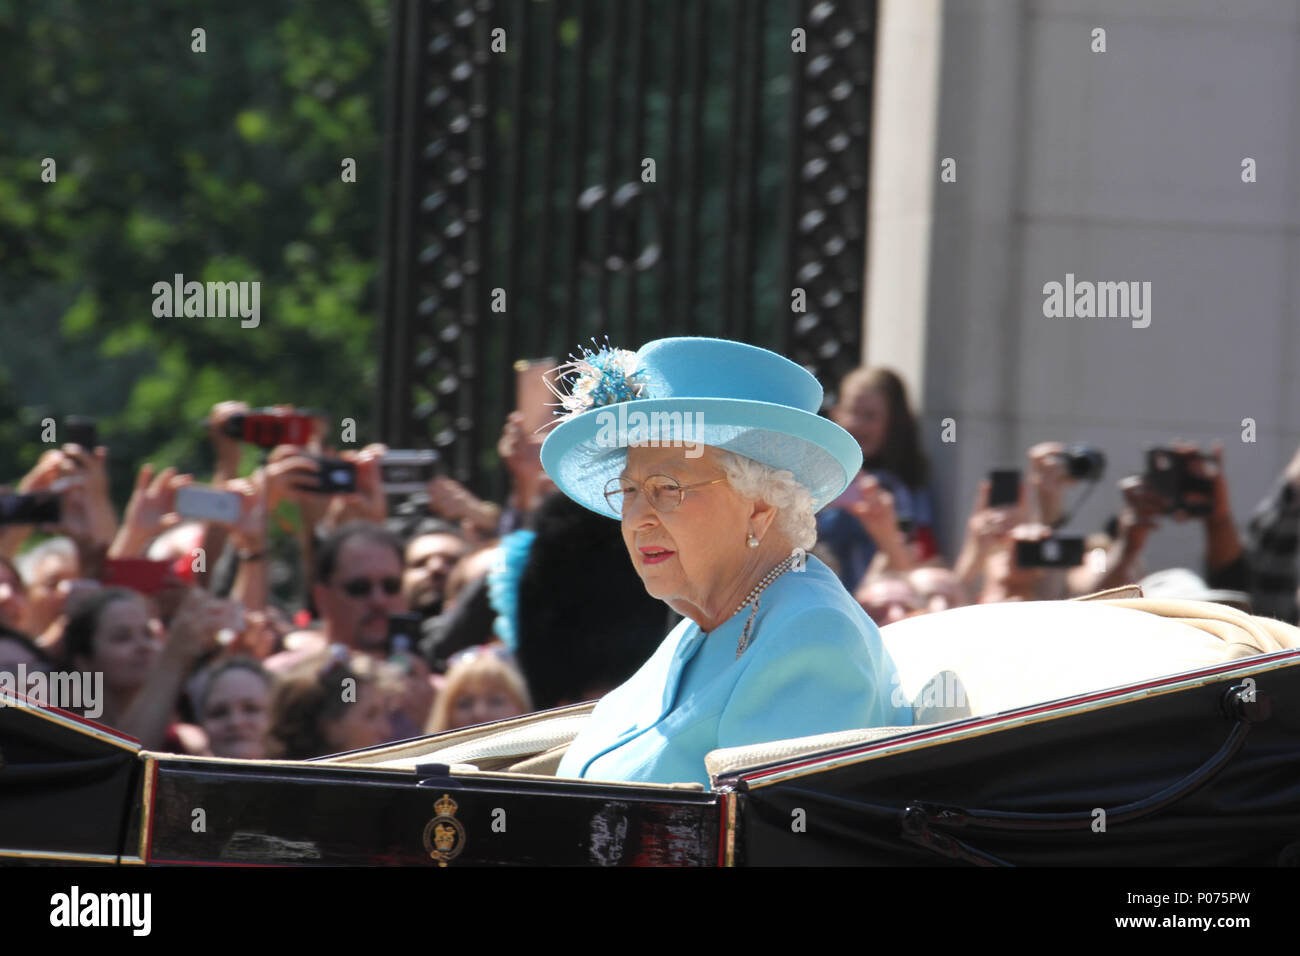 London, UK 9 June 2018: HMR Queen Elizabeth seen on horse-drawn carriage as they make their way to the Horse Guards Parade Ground on 9 June 2018. Over 1400 parading soldiers, 200 horses and 400 musicians come together each June in a great display of military precision, horsemanship and fanfare to mark The Queen's official birthday. Credit: David Mbiyu/Alamy - Stock Image